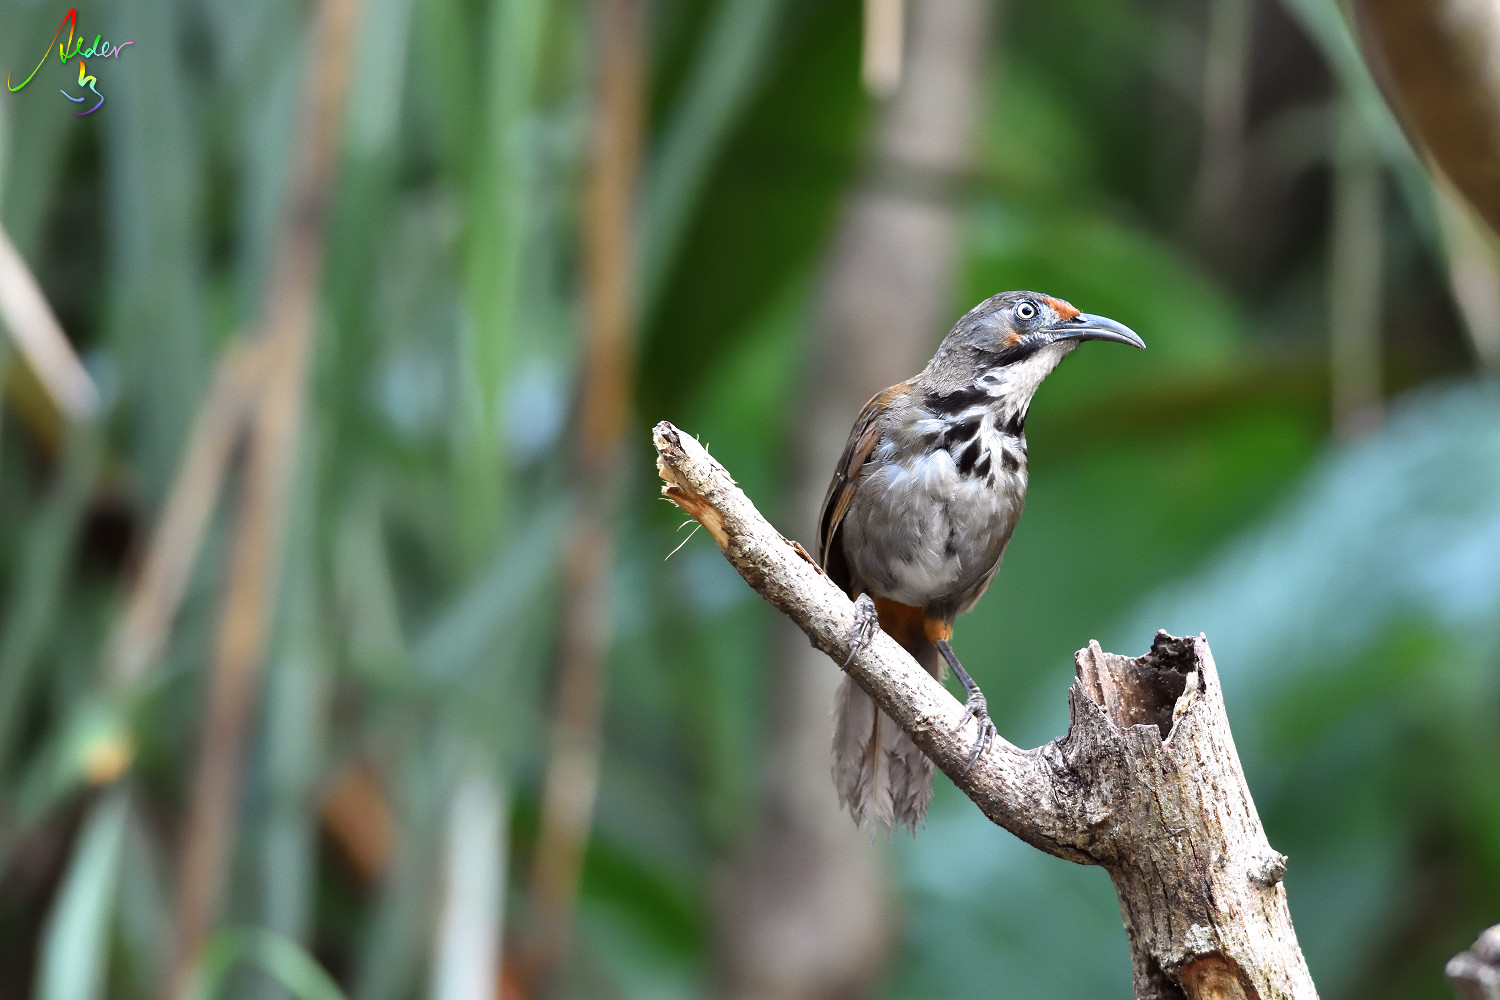 Rusty-cheeked_Scimitar_Babbler_5093